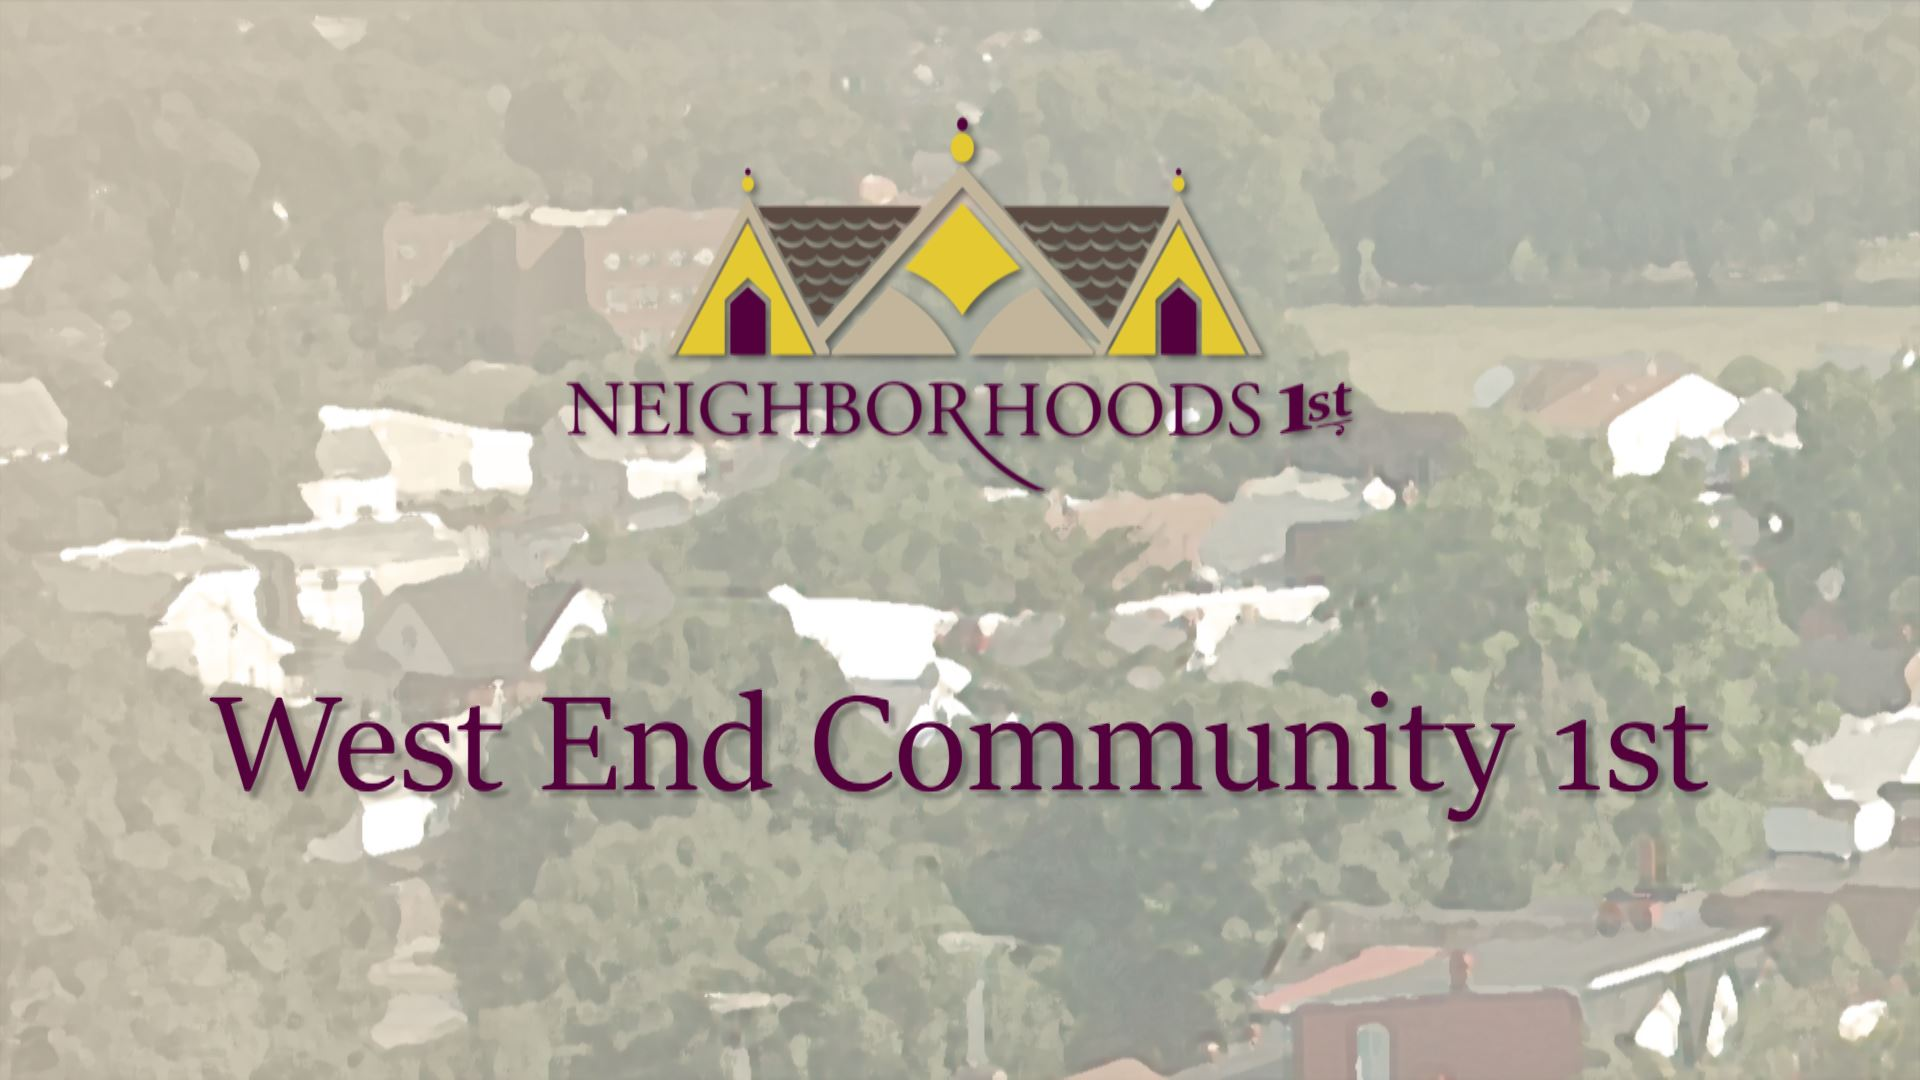 West End Community 1st